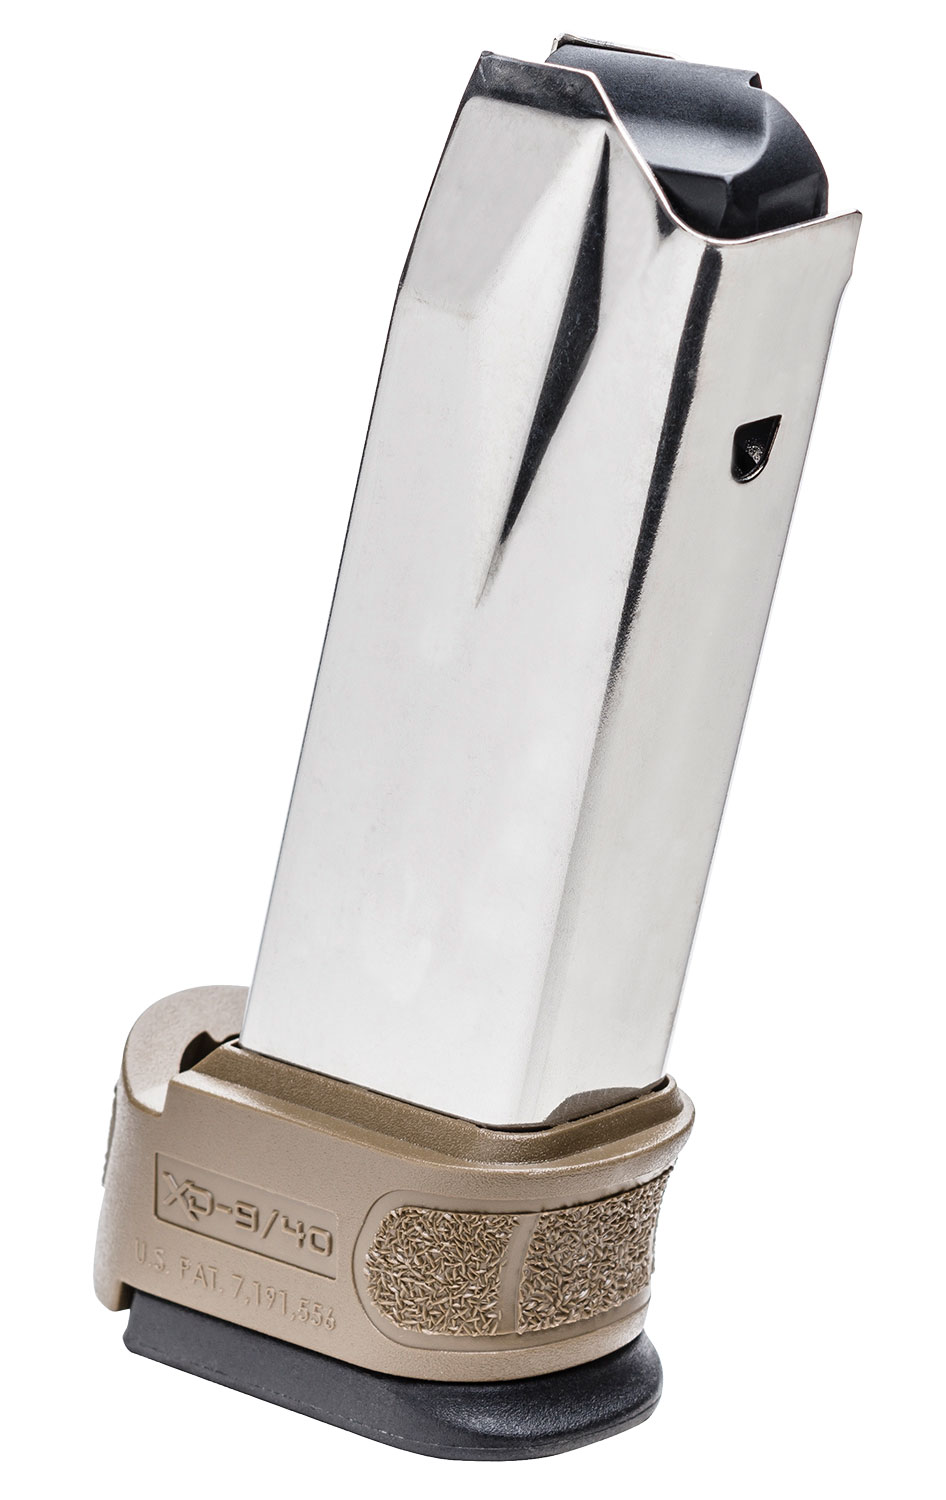 Springfield Armory XD Mod.2 Sub-Compact 9mm 10-Round Magazine FDE